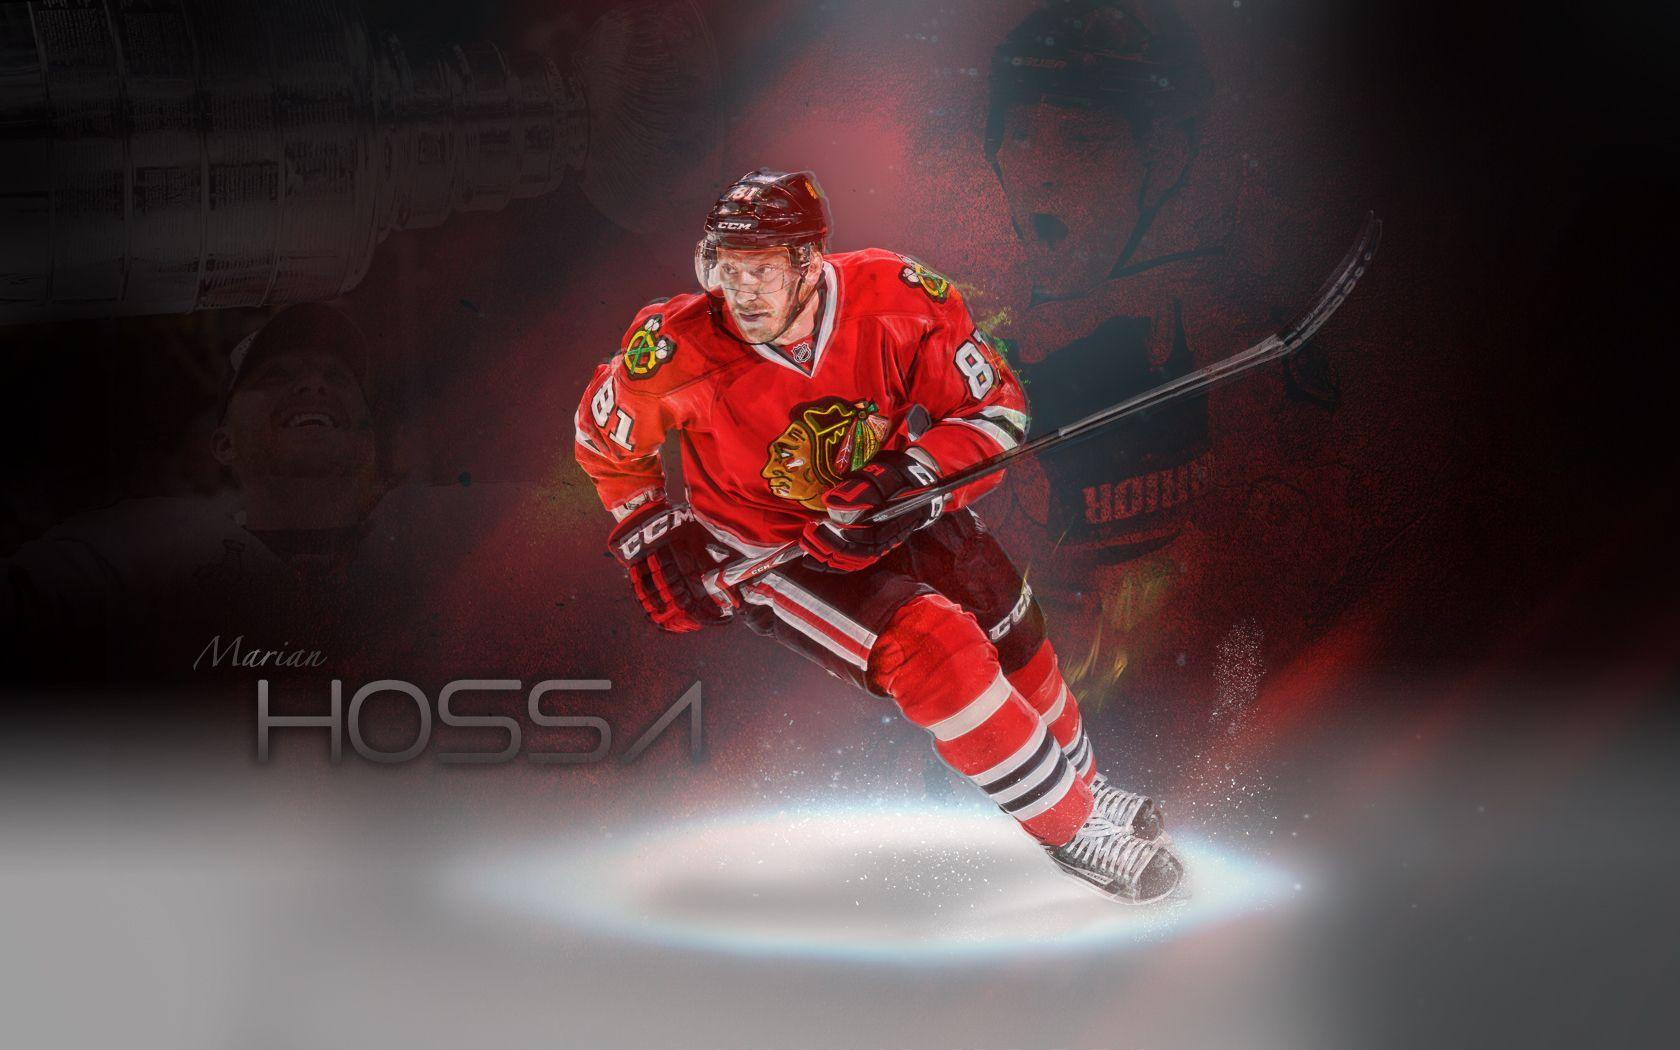 Marian Hossa NHL Wallpapers